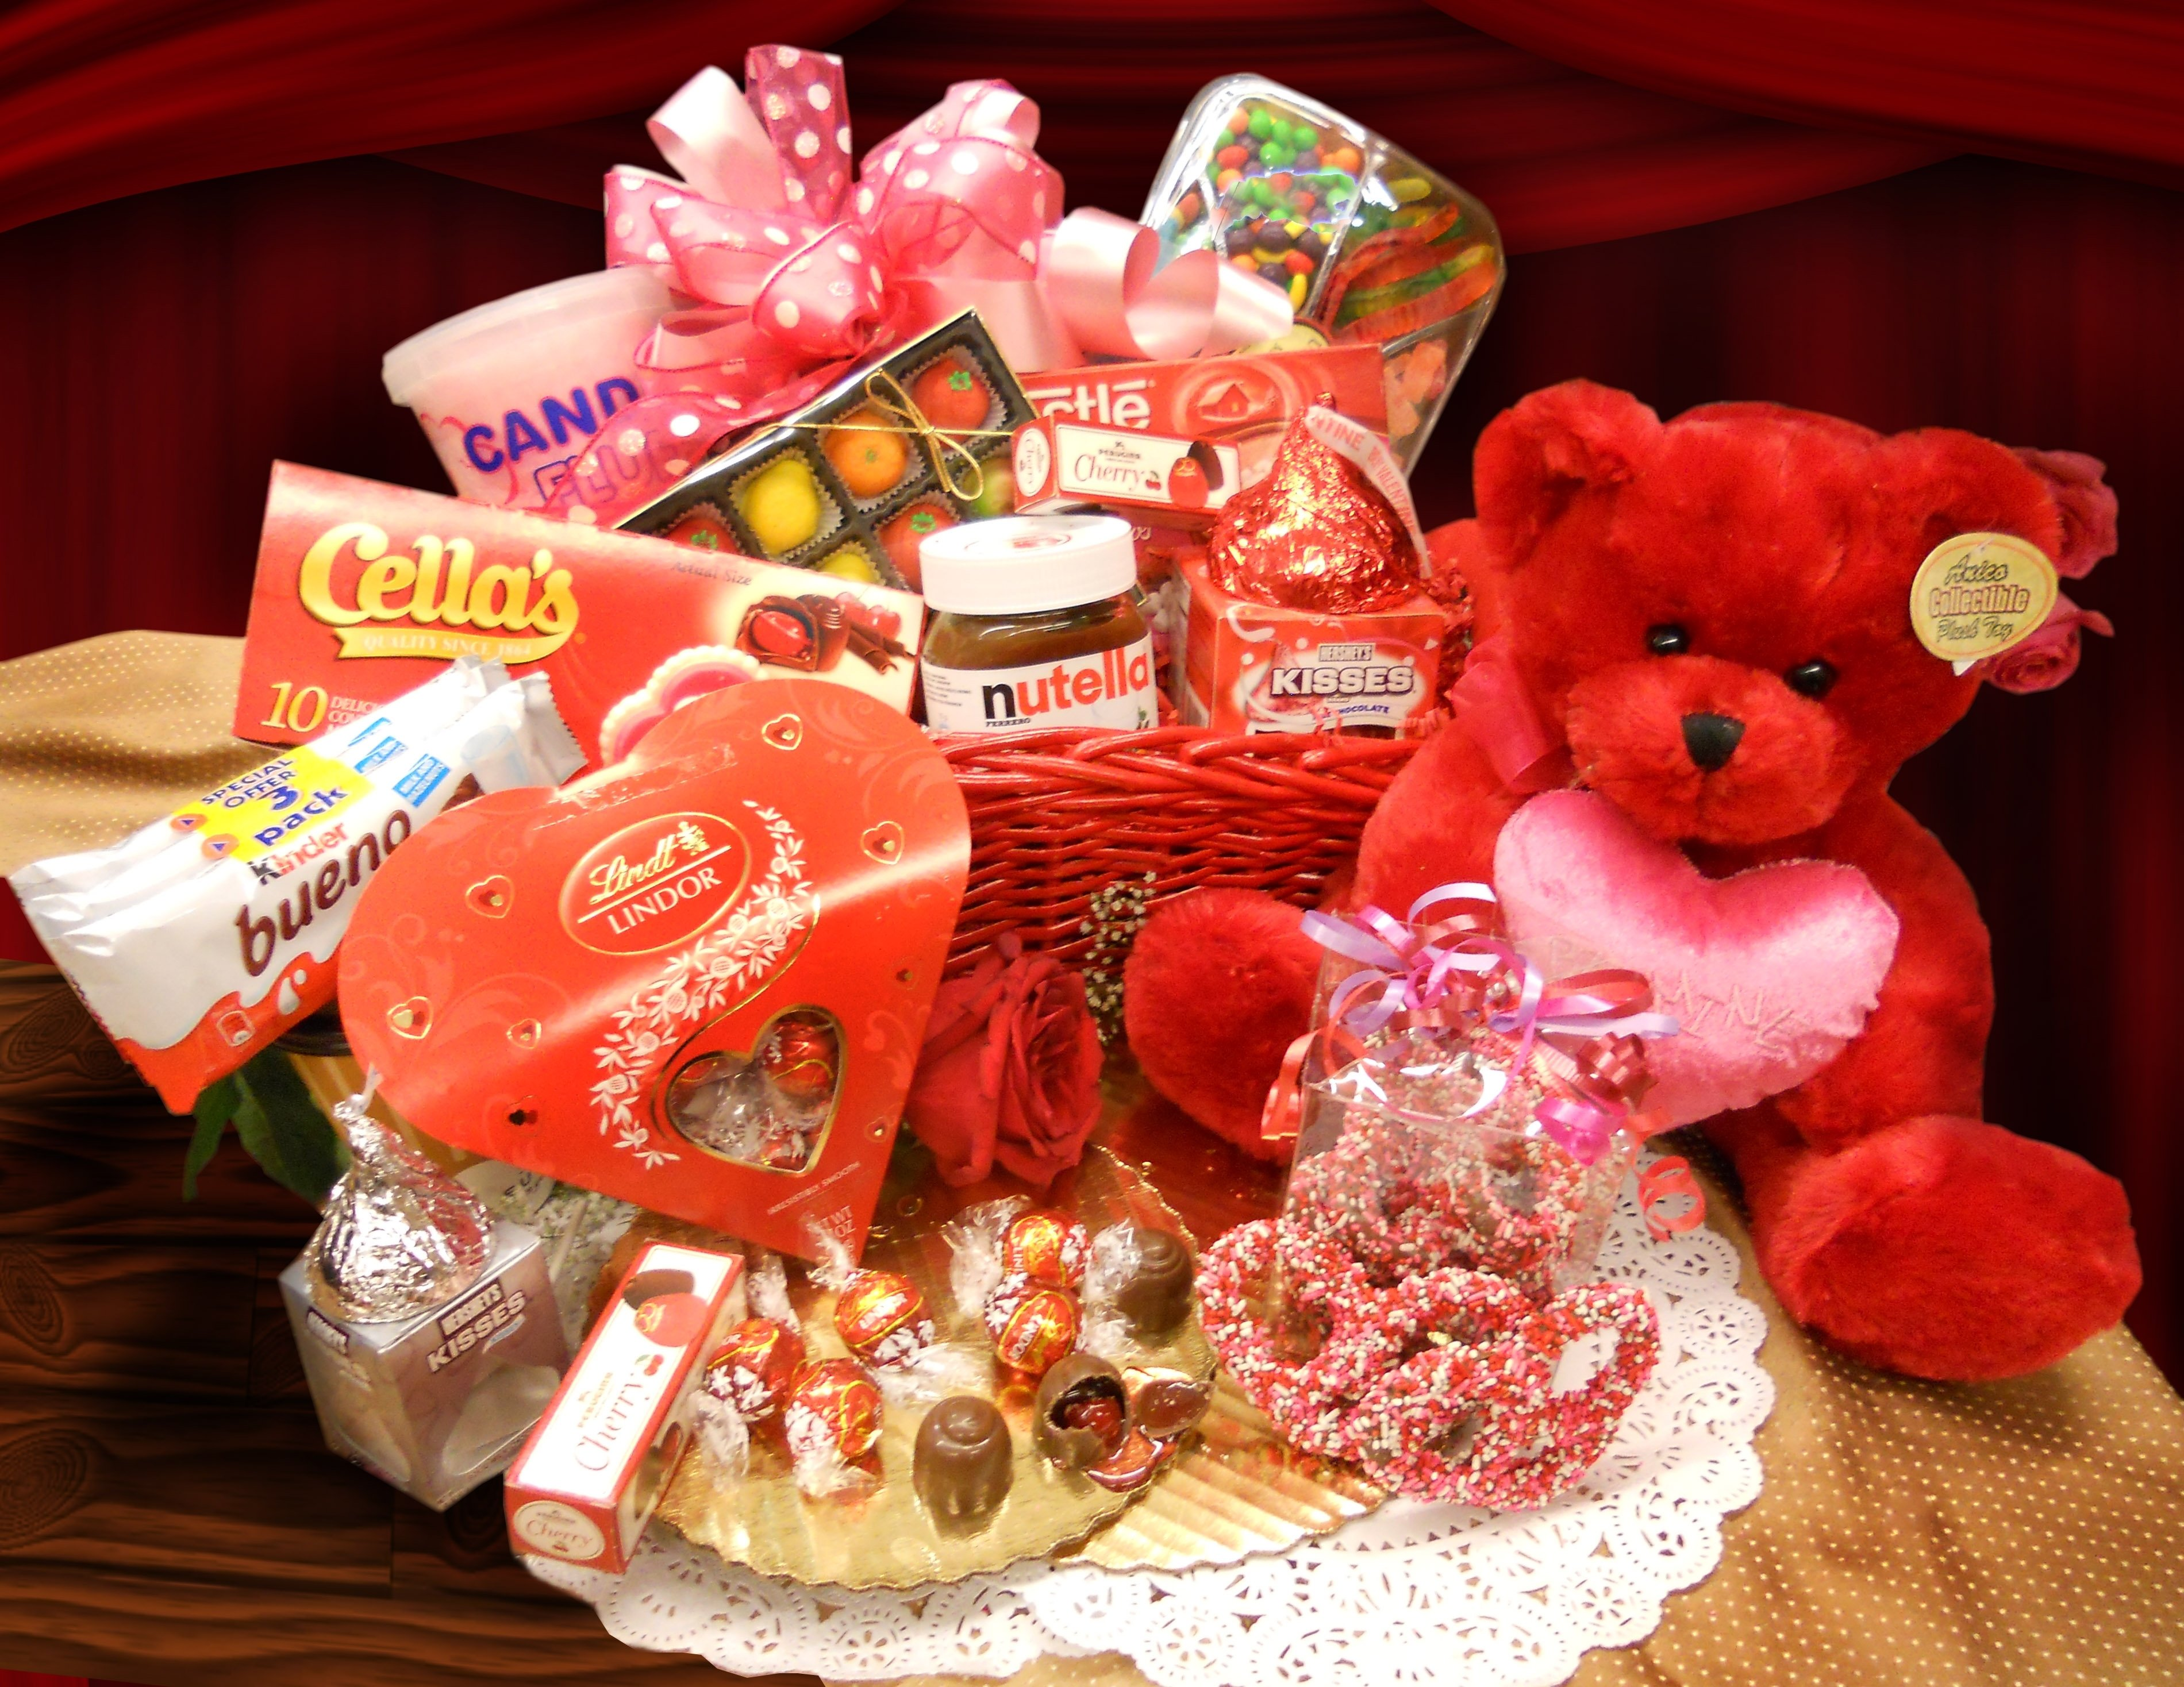 10 Lovely Unique Valentines Day Ideas For Her valentines day gifts great valentines day gifts for her unique 1 2020